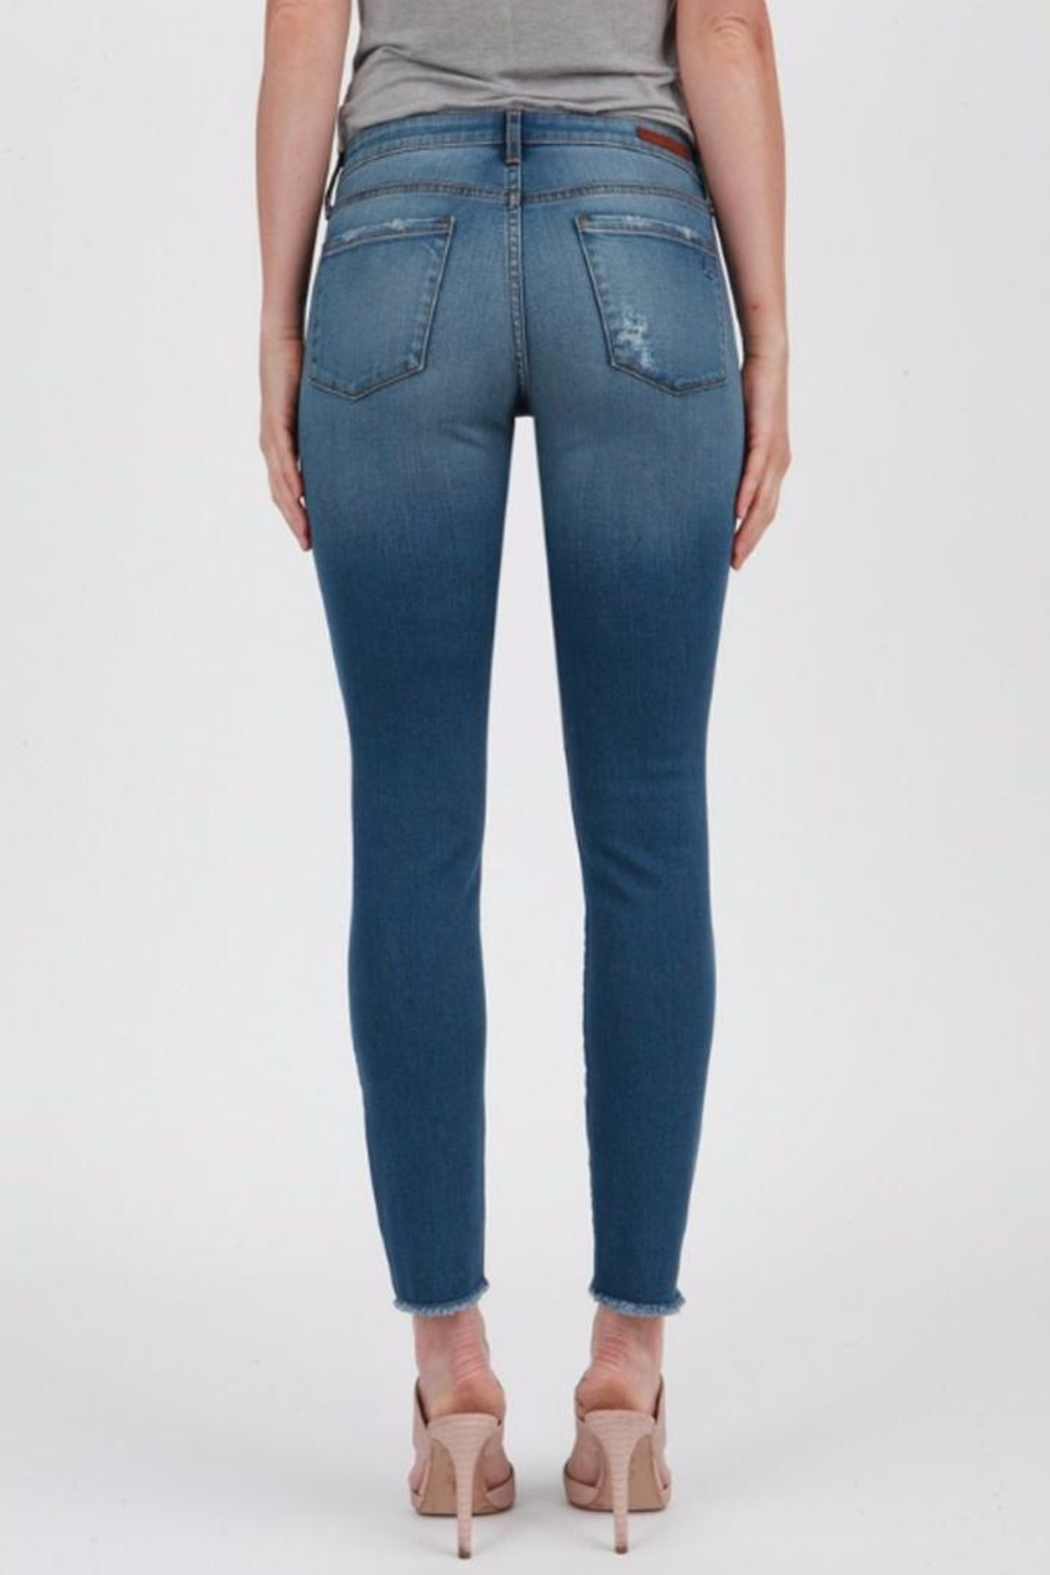 Articles of Society Sarah Skinny Jeans - Side Cropped Image